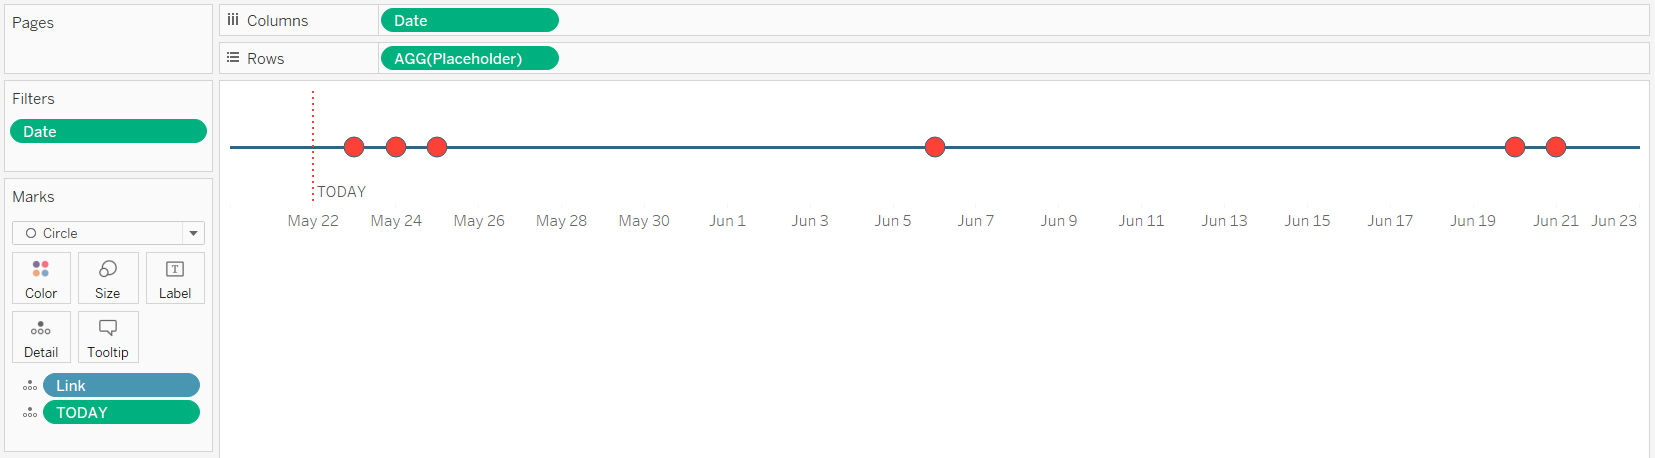 Tableau Timeline with Today Reference Line Final